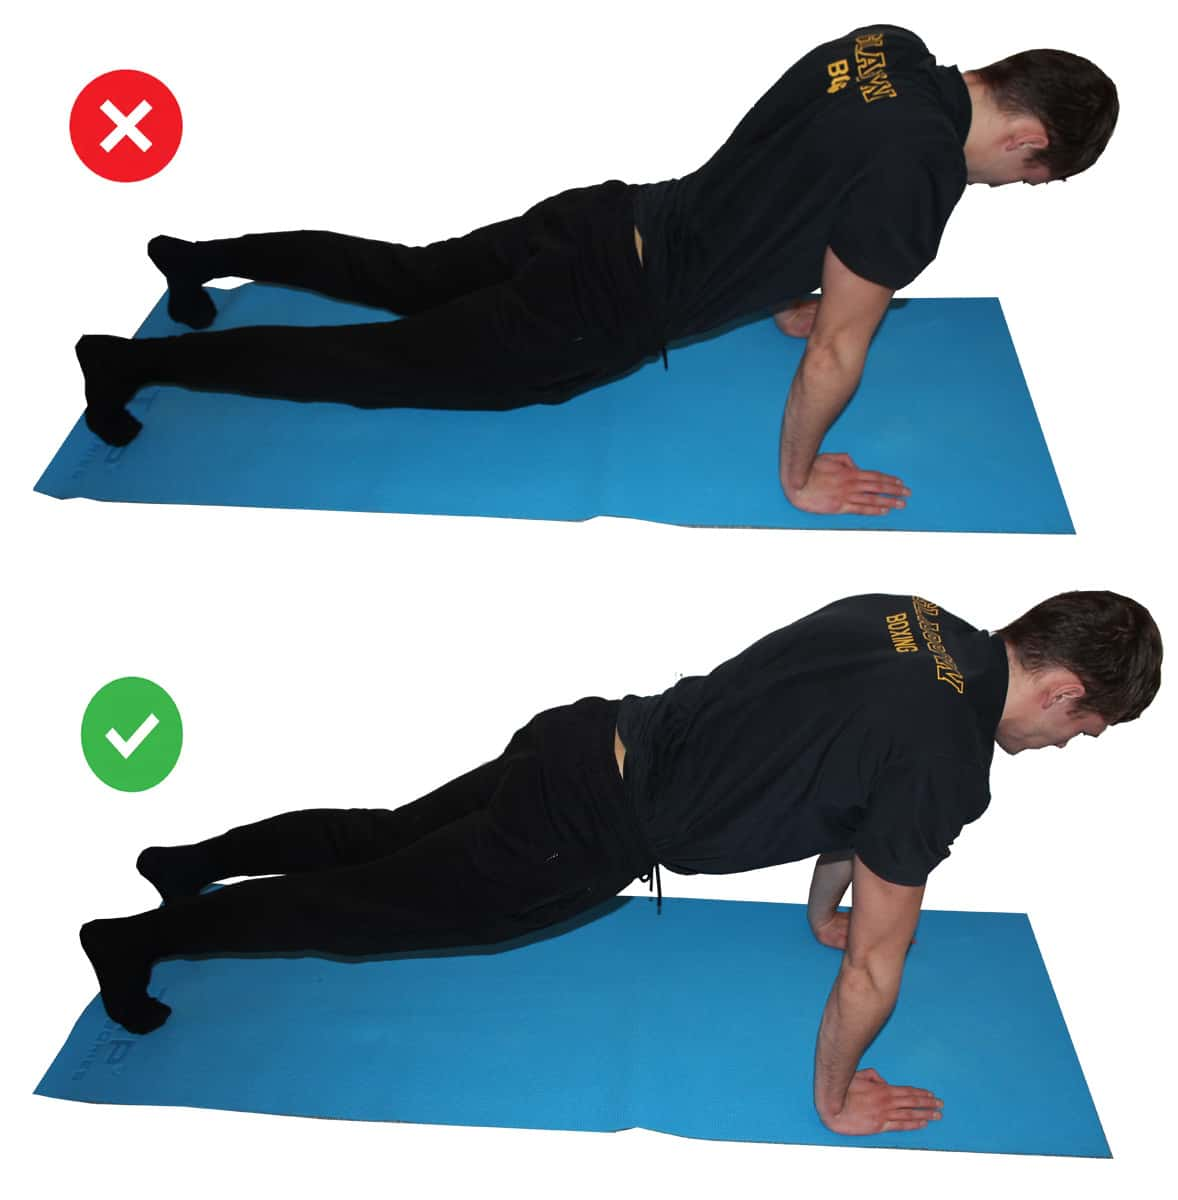 Proper pushup form: demonstration of the mistake in a side by side comparison of lowering the hips.